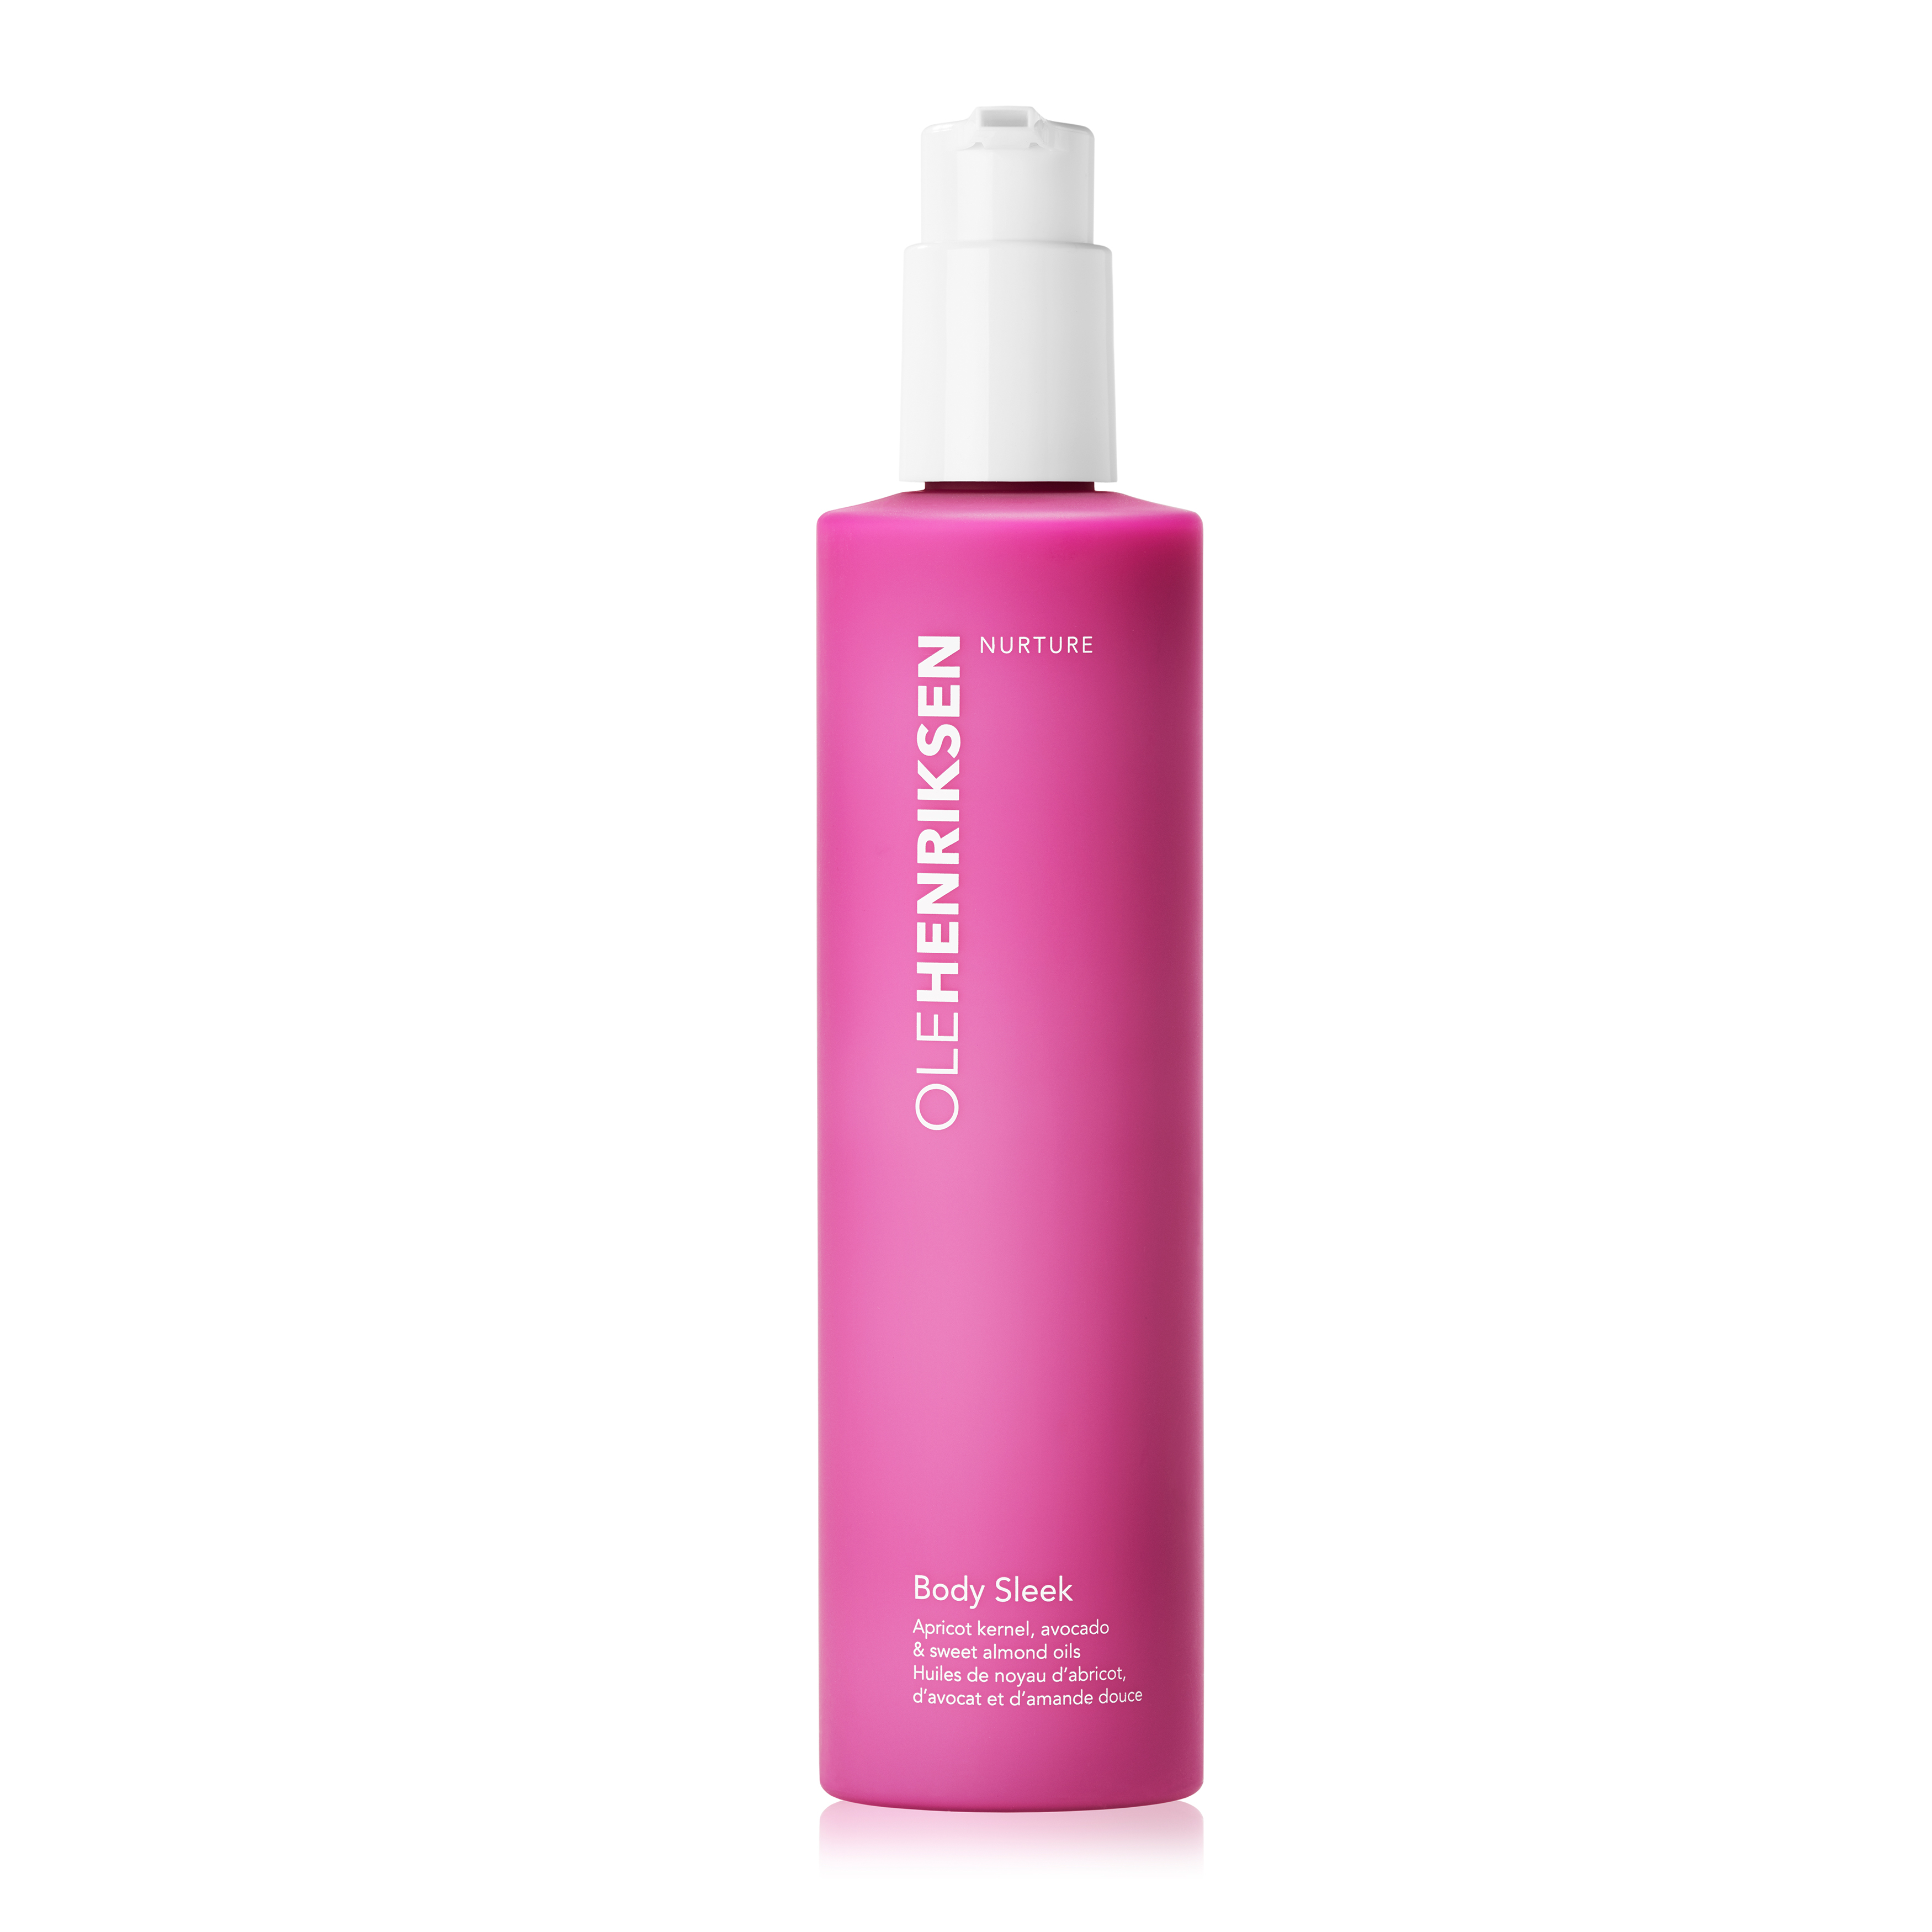 Nurture Nuturing Body Sleek 295 ml